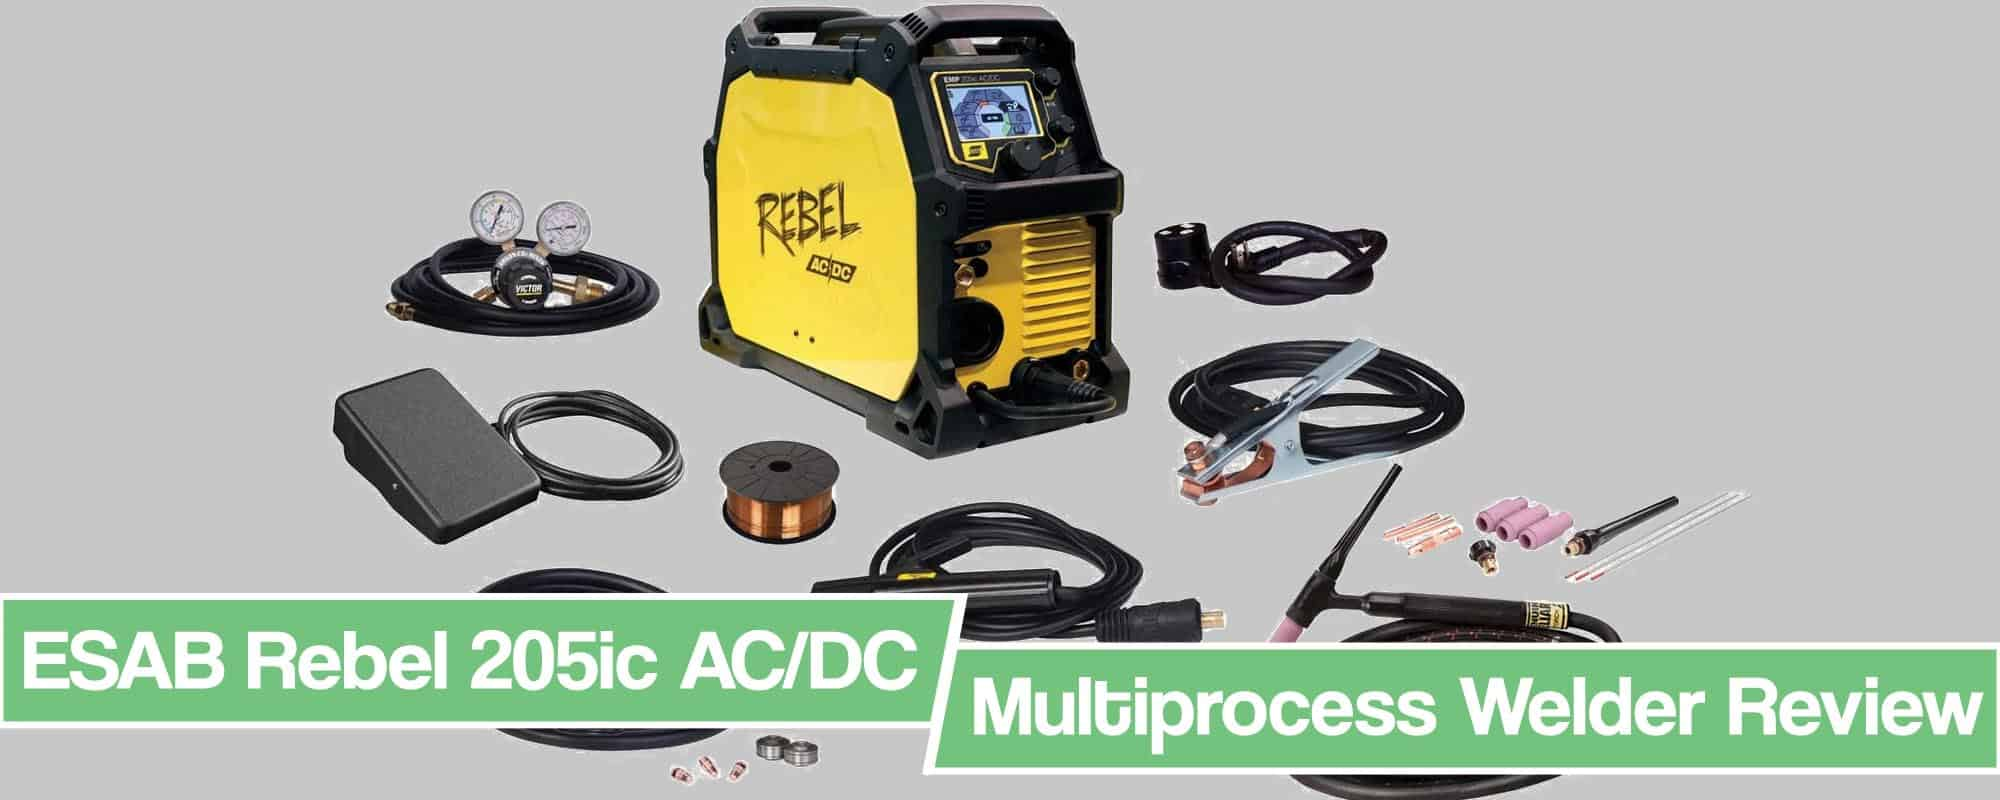 Feature image for ESAB Rebel 205ic review article